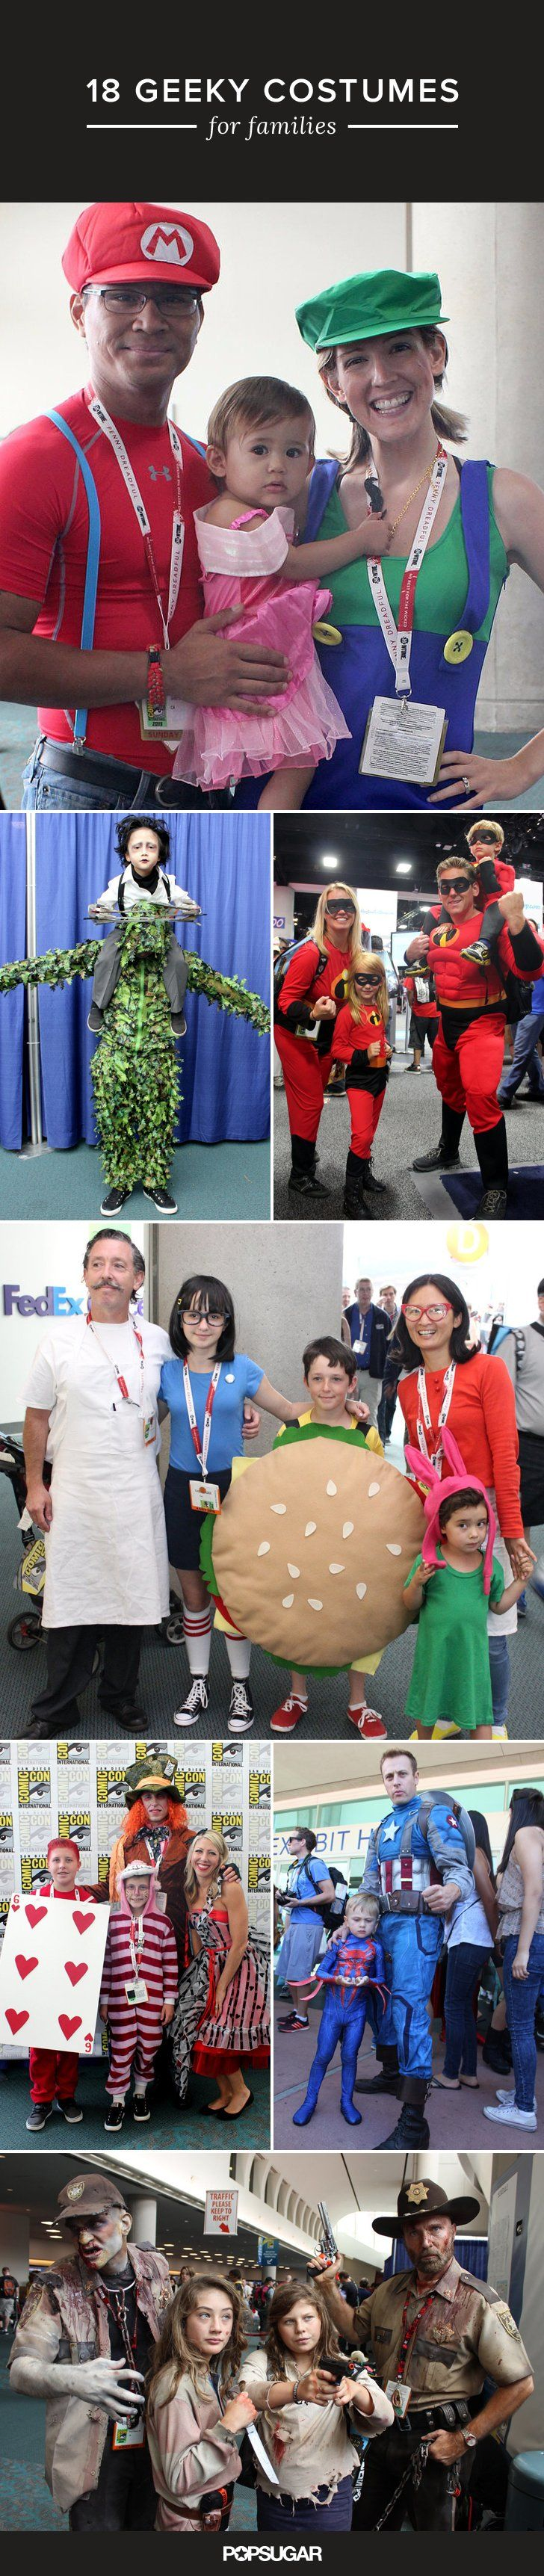 Have a geeky family? Then these Halloween costume ideas are for you!